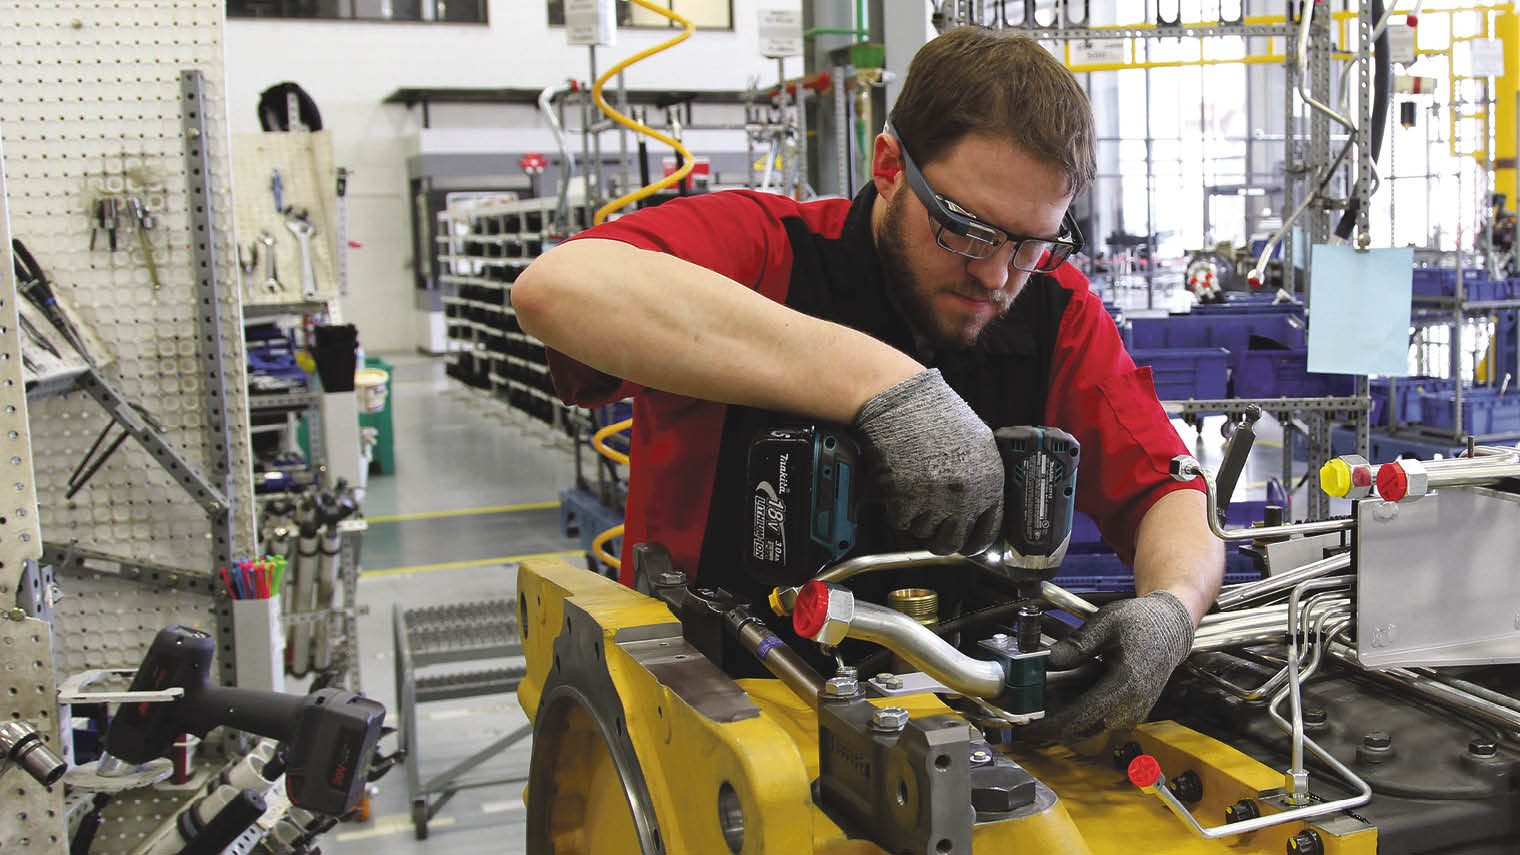 Workers at agricultural equipment manufacturer AGCO use Google Glass Enterprise Edition to view assembly instructions, make reports and get remote video support